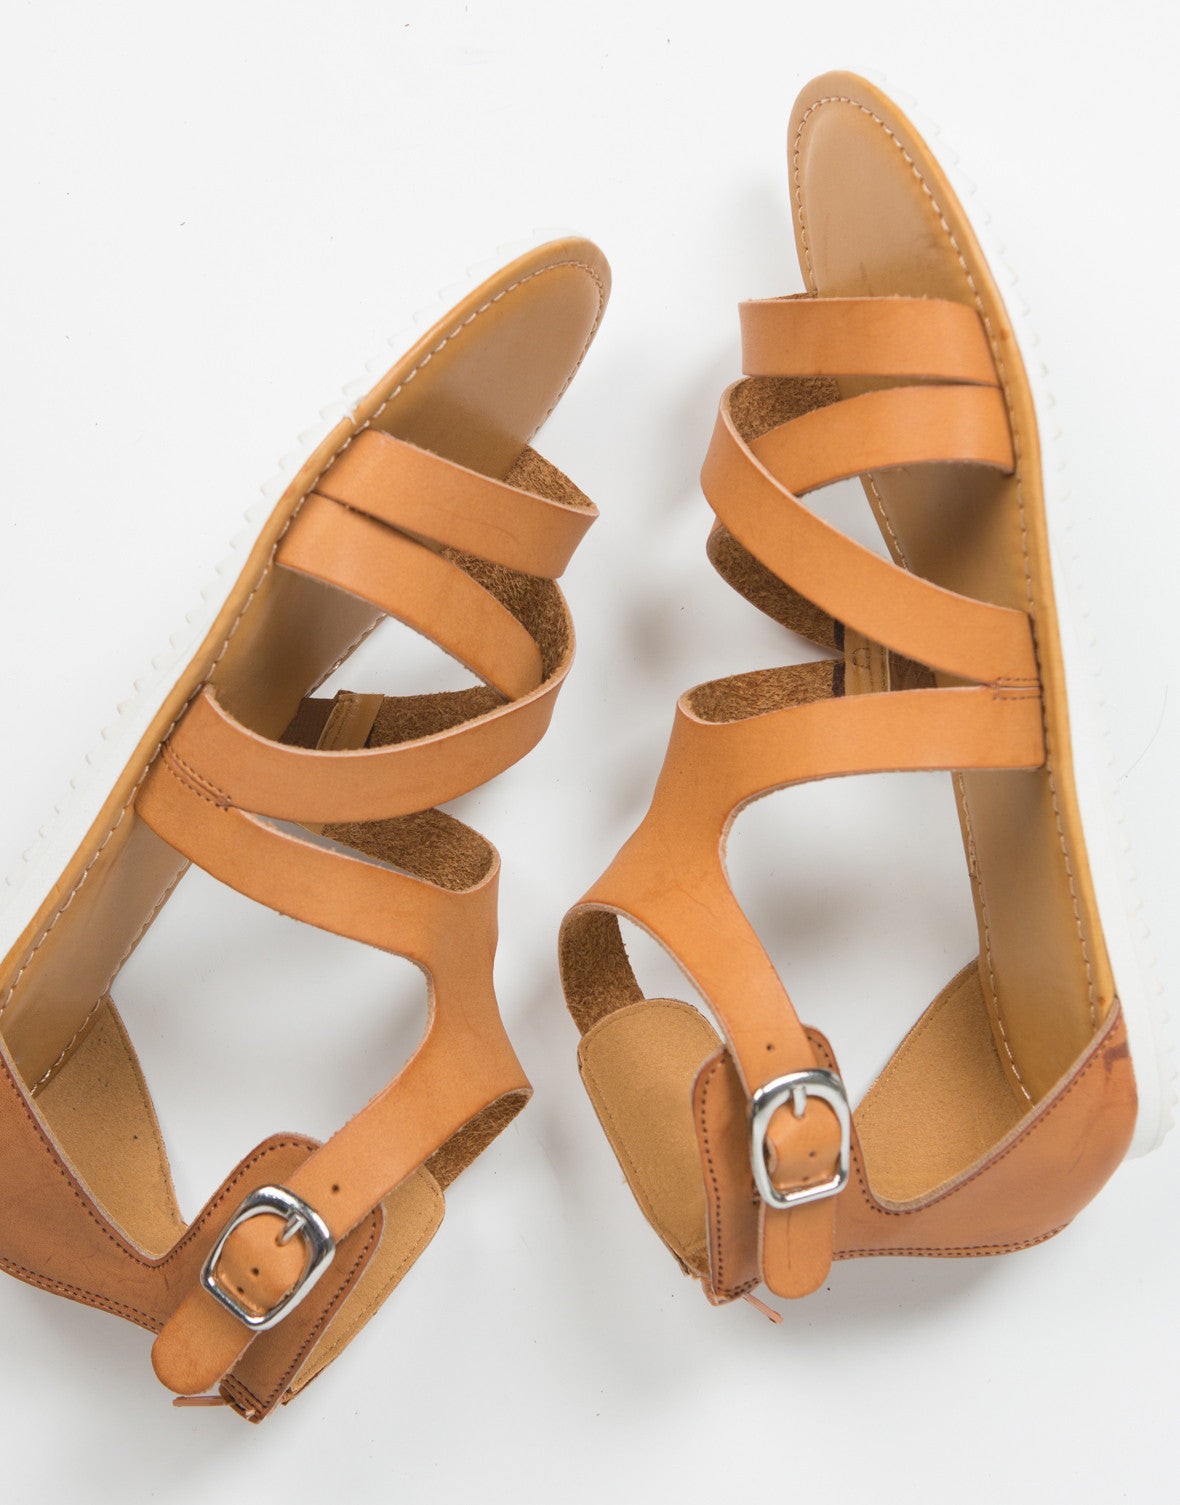 Top View of Strappy Contrast Buckled Sandals